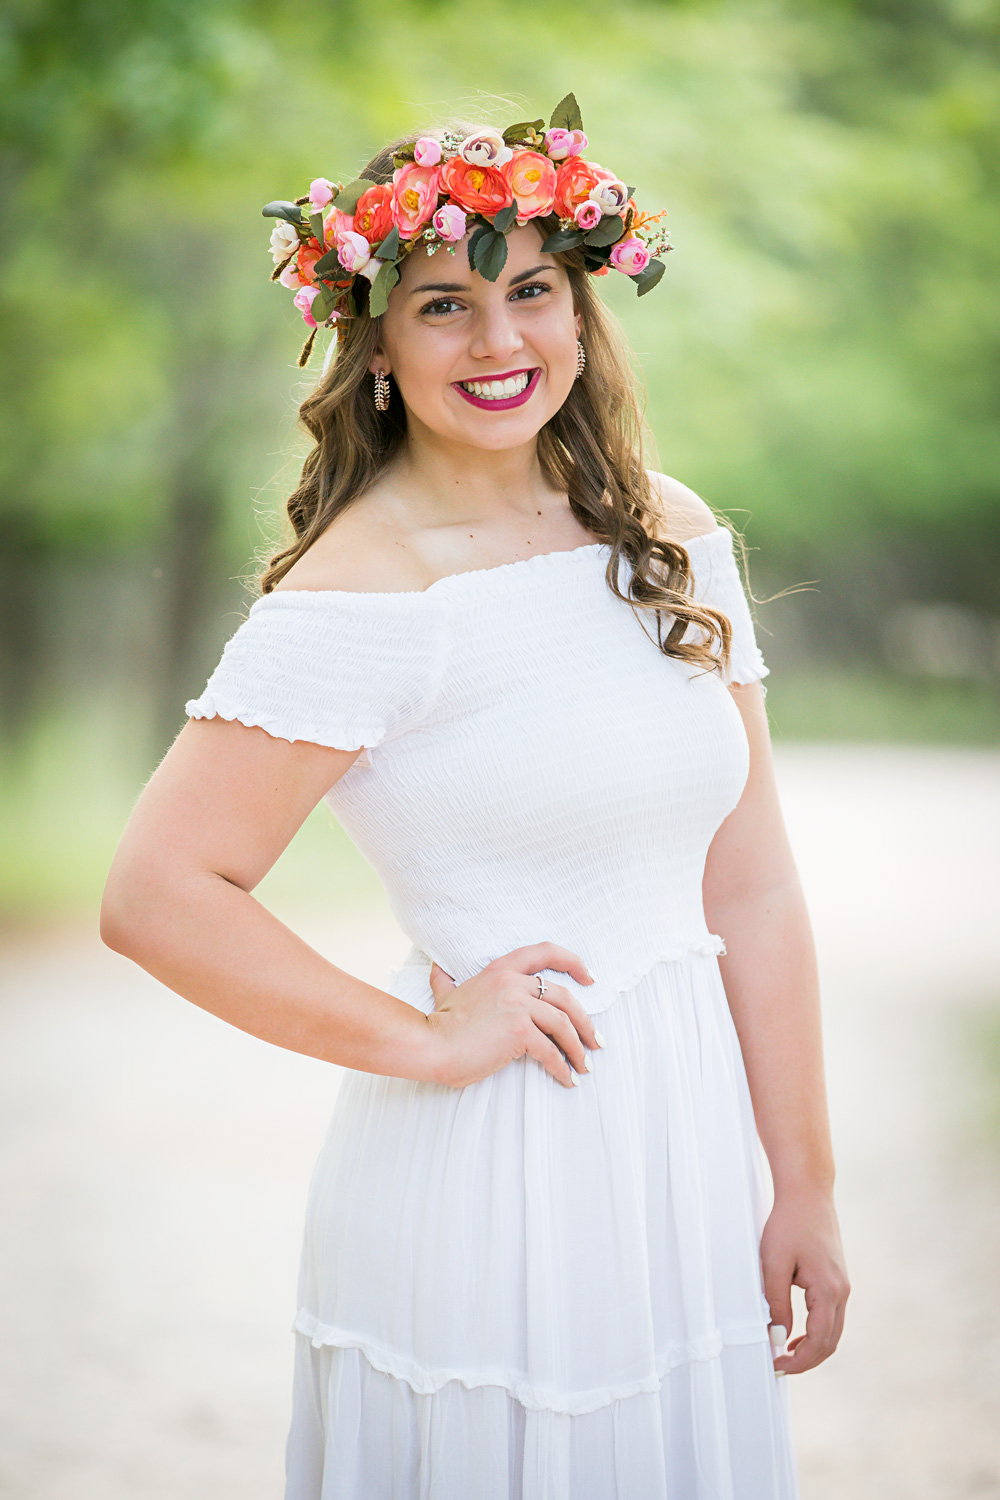 High school senior girl wearing white dress and pink and orange flower crown at Martin Nature Park in Oklahoma City.